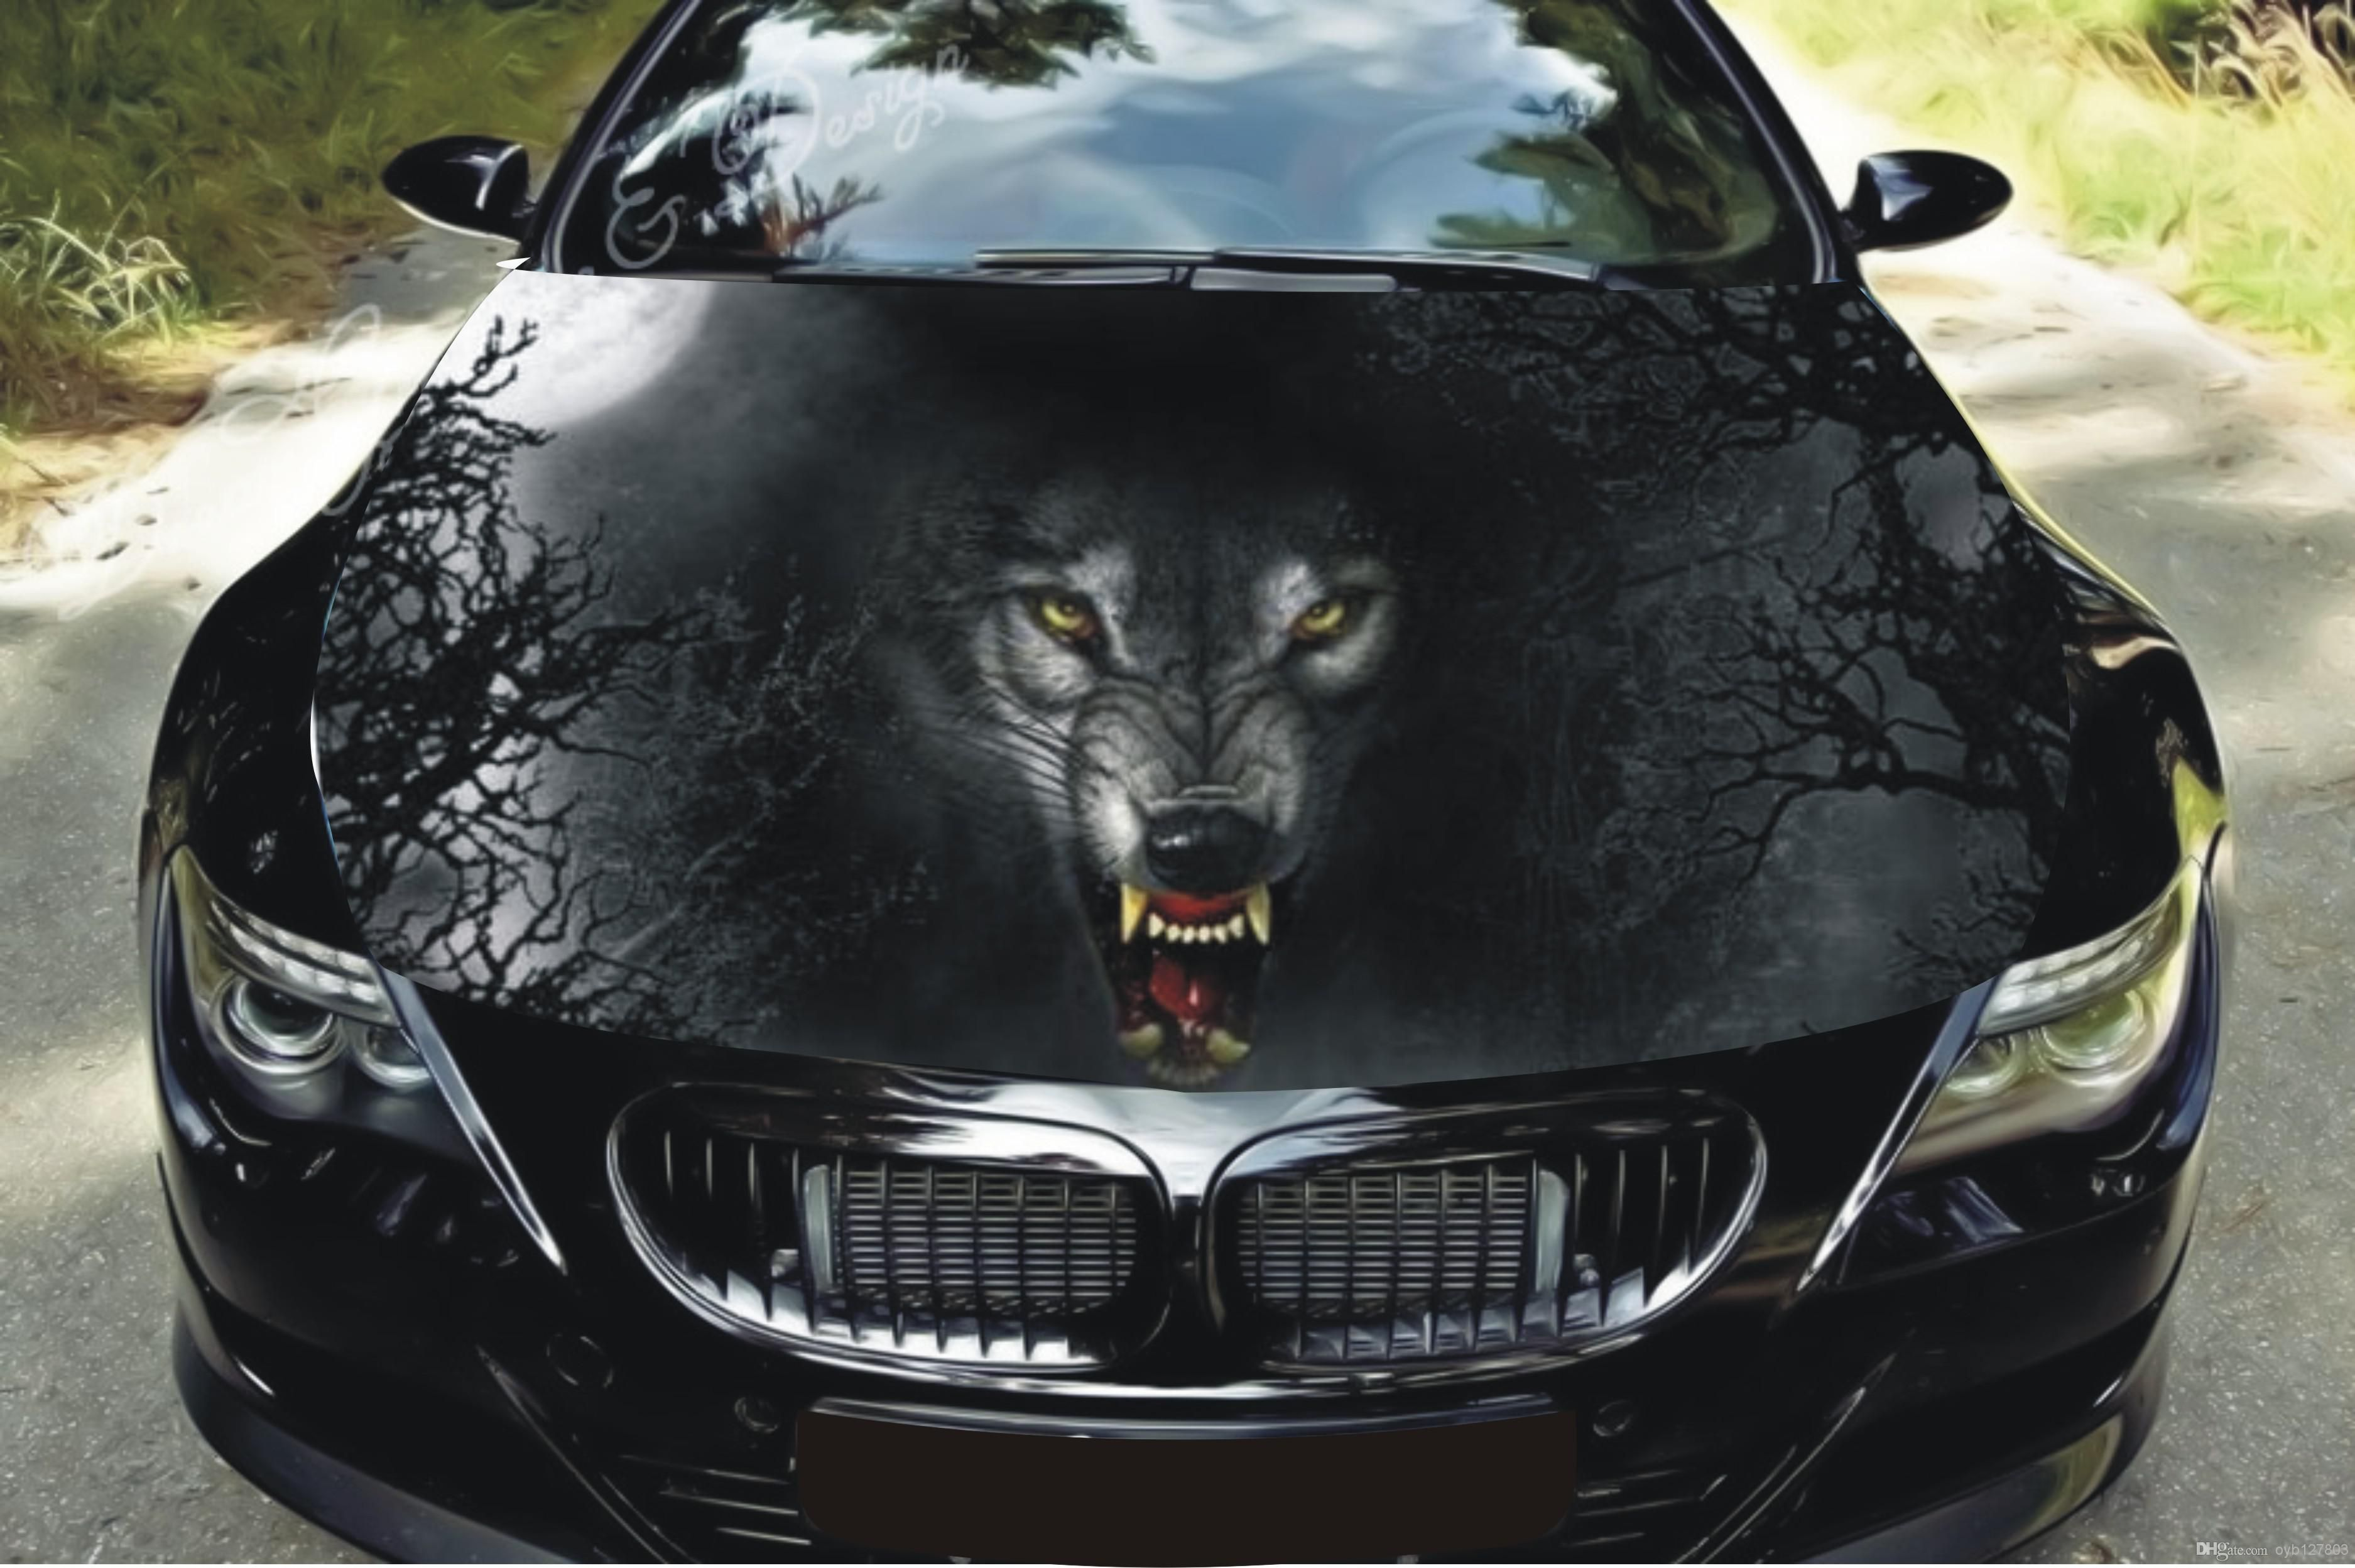 Best car sticker design - 17 Best Images About Window Class Film Sticker On Pinterest Vinyls Contact Paper And Static Cling